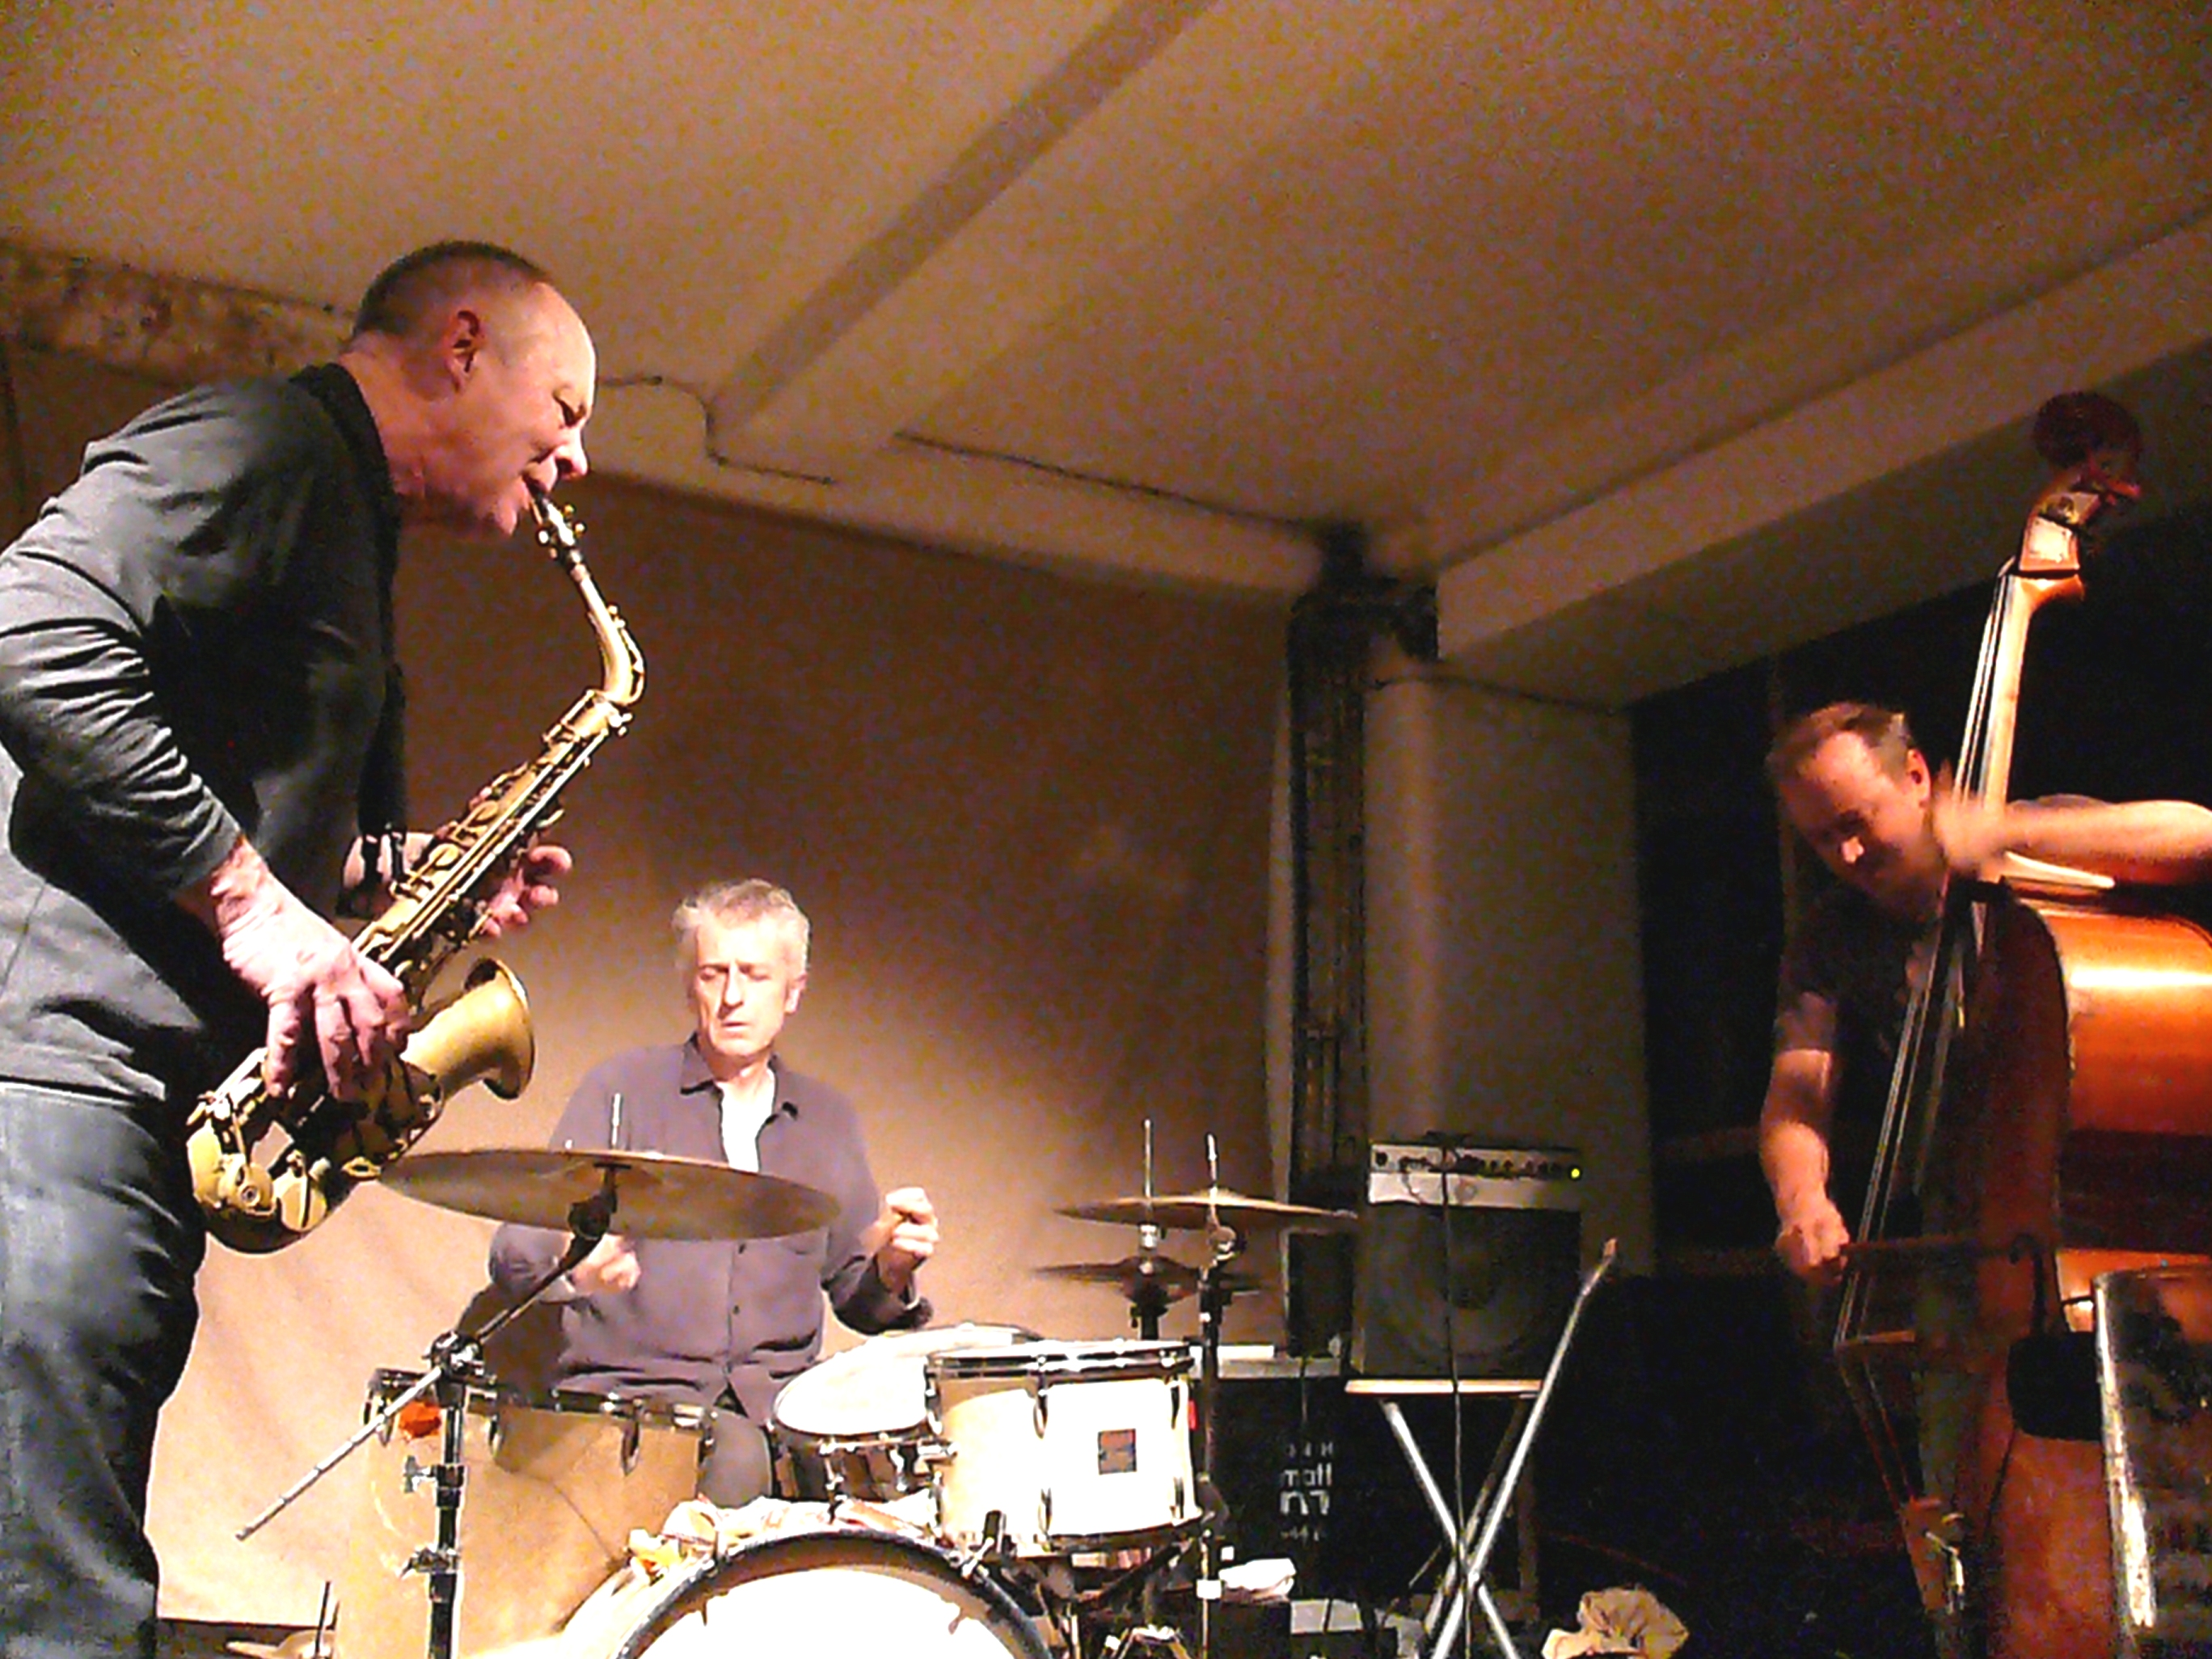 Alan Wilkinson, Steve Noble and John Edwards Trio at Cafe Oto, London in January 2013